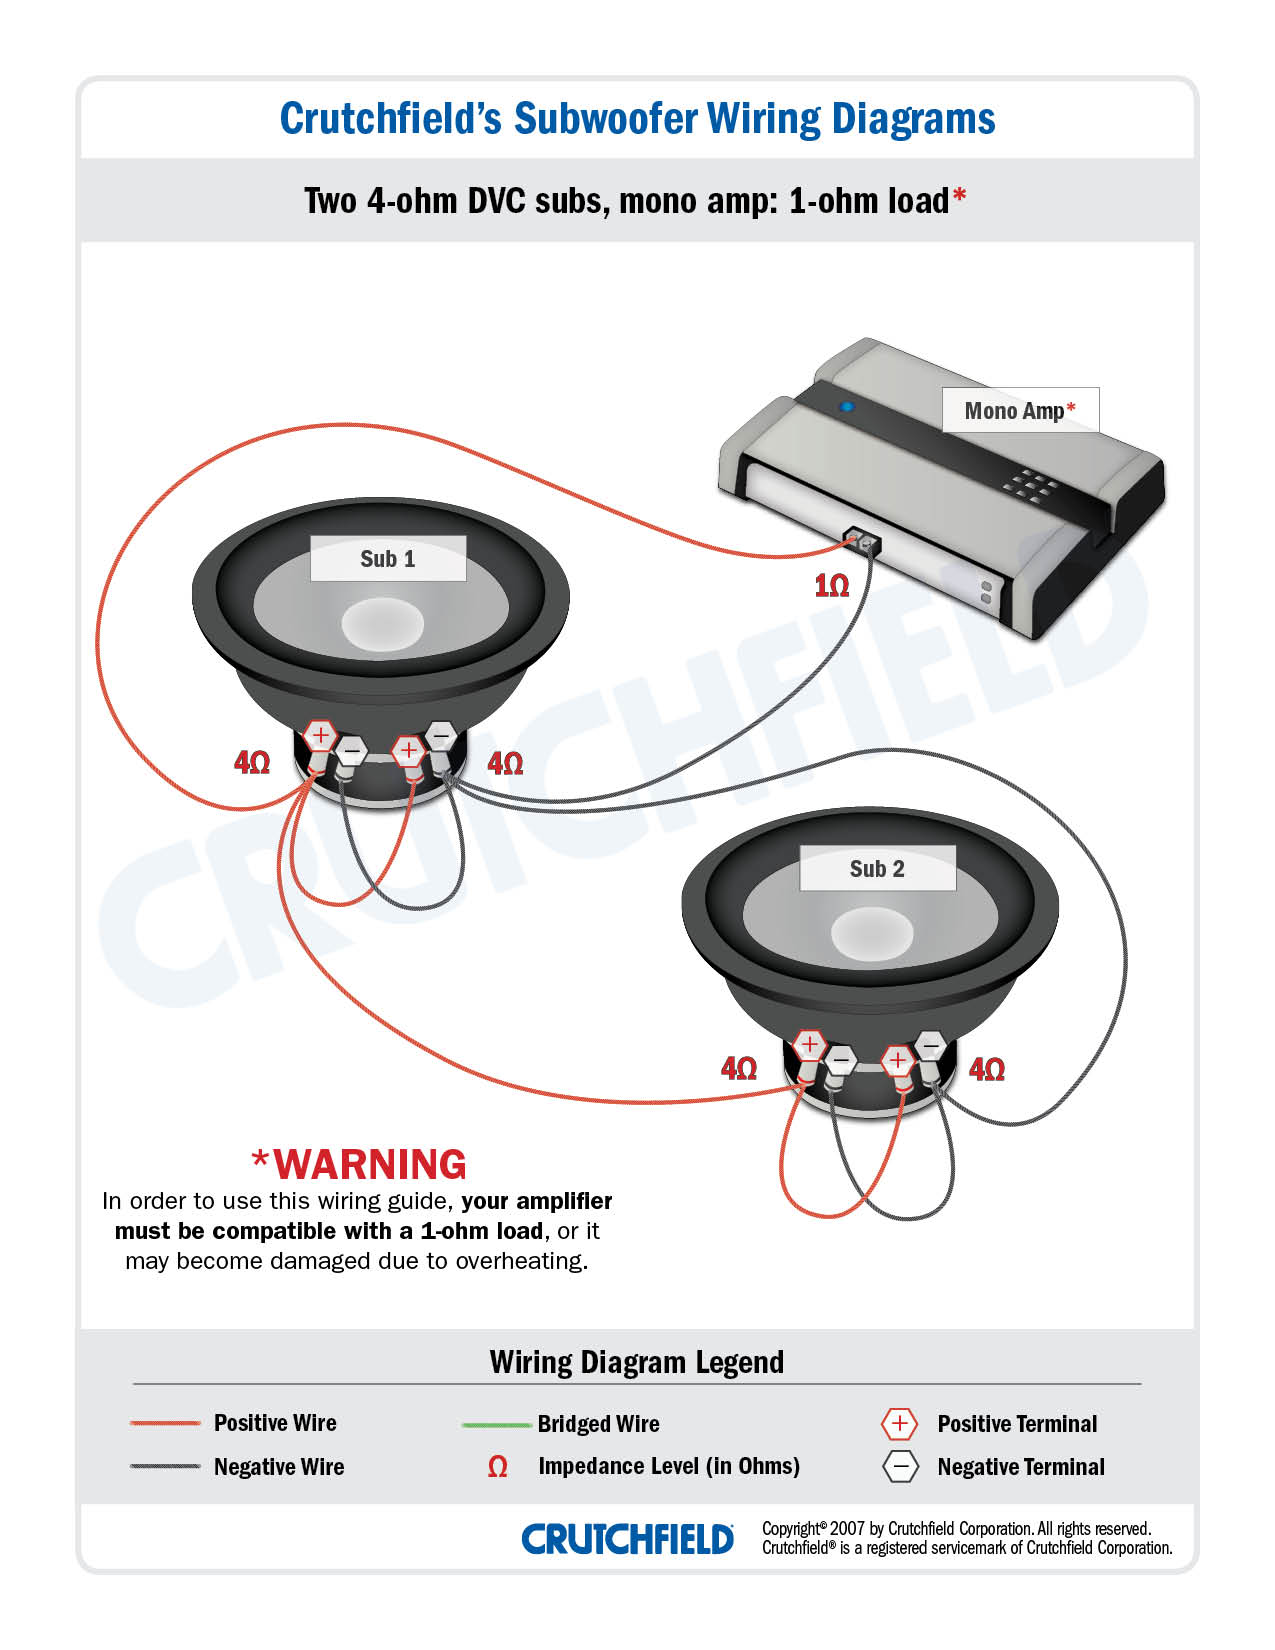 Astonishing Subwoofer Wiring Diagrams How To Wire Your Subs Wiring Cloud Hisonuggs Outletorg